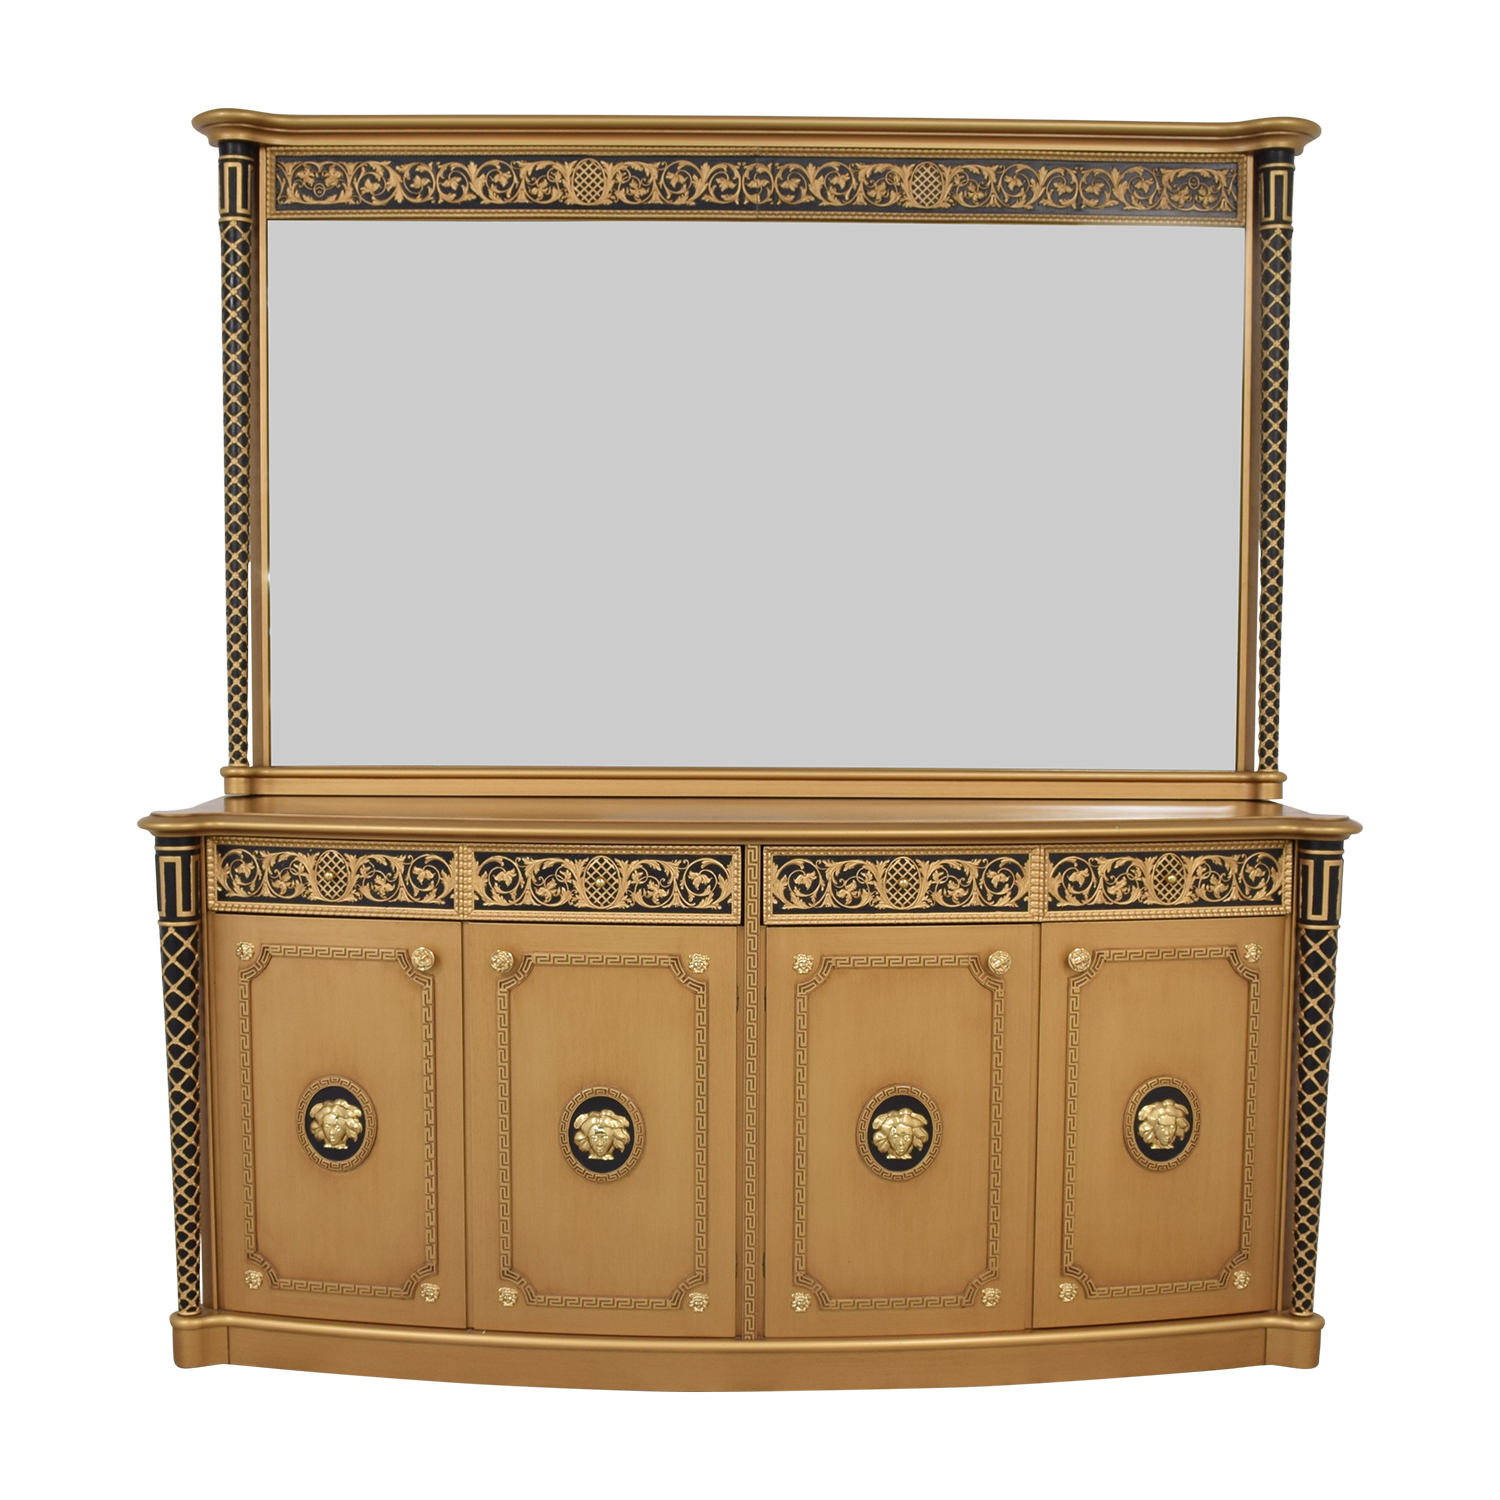 Versace-Style Console Dresser with Mirror price